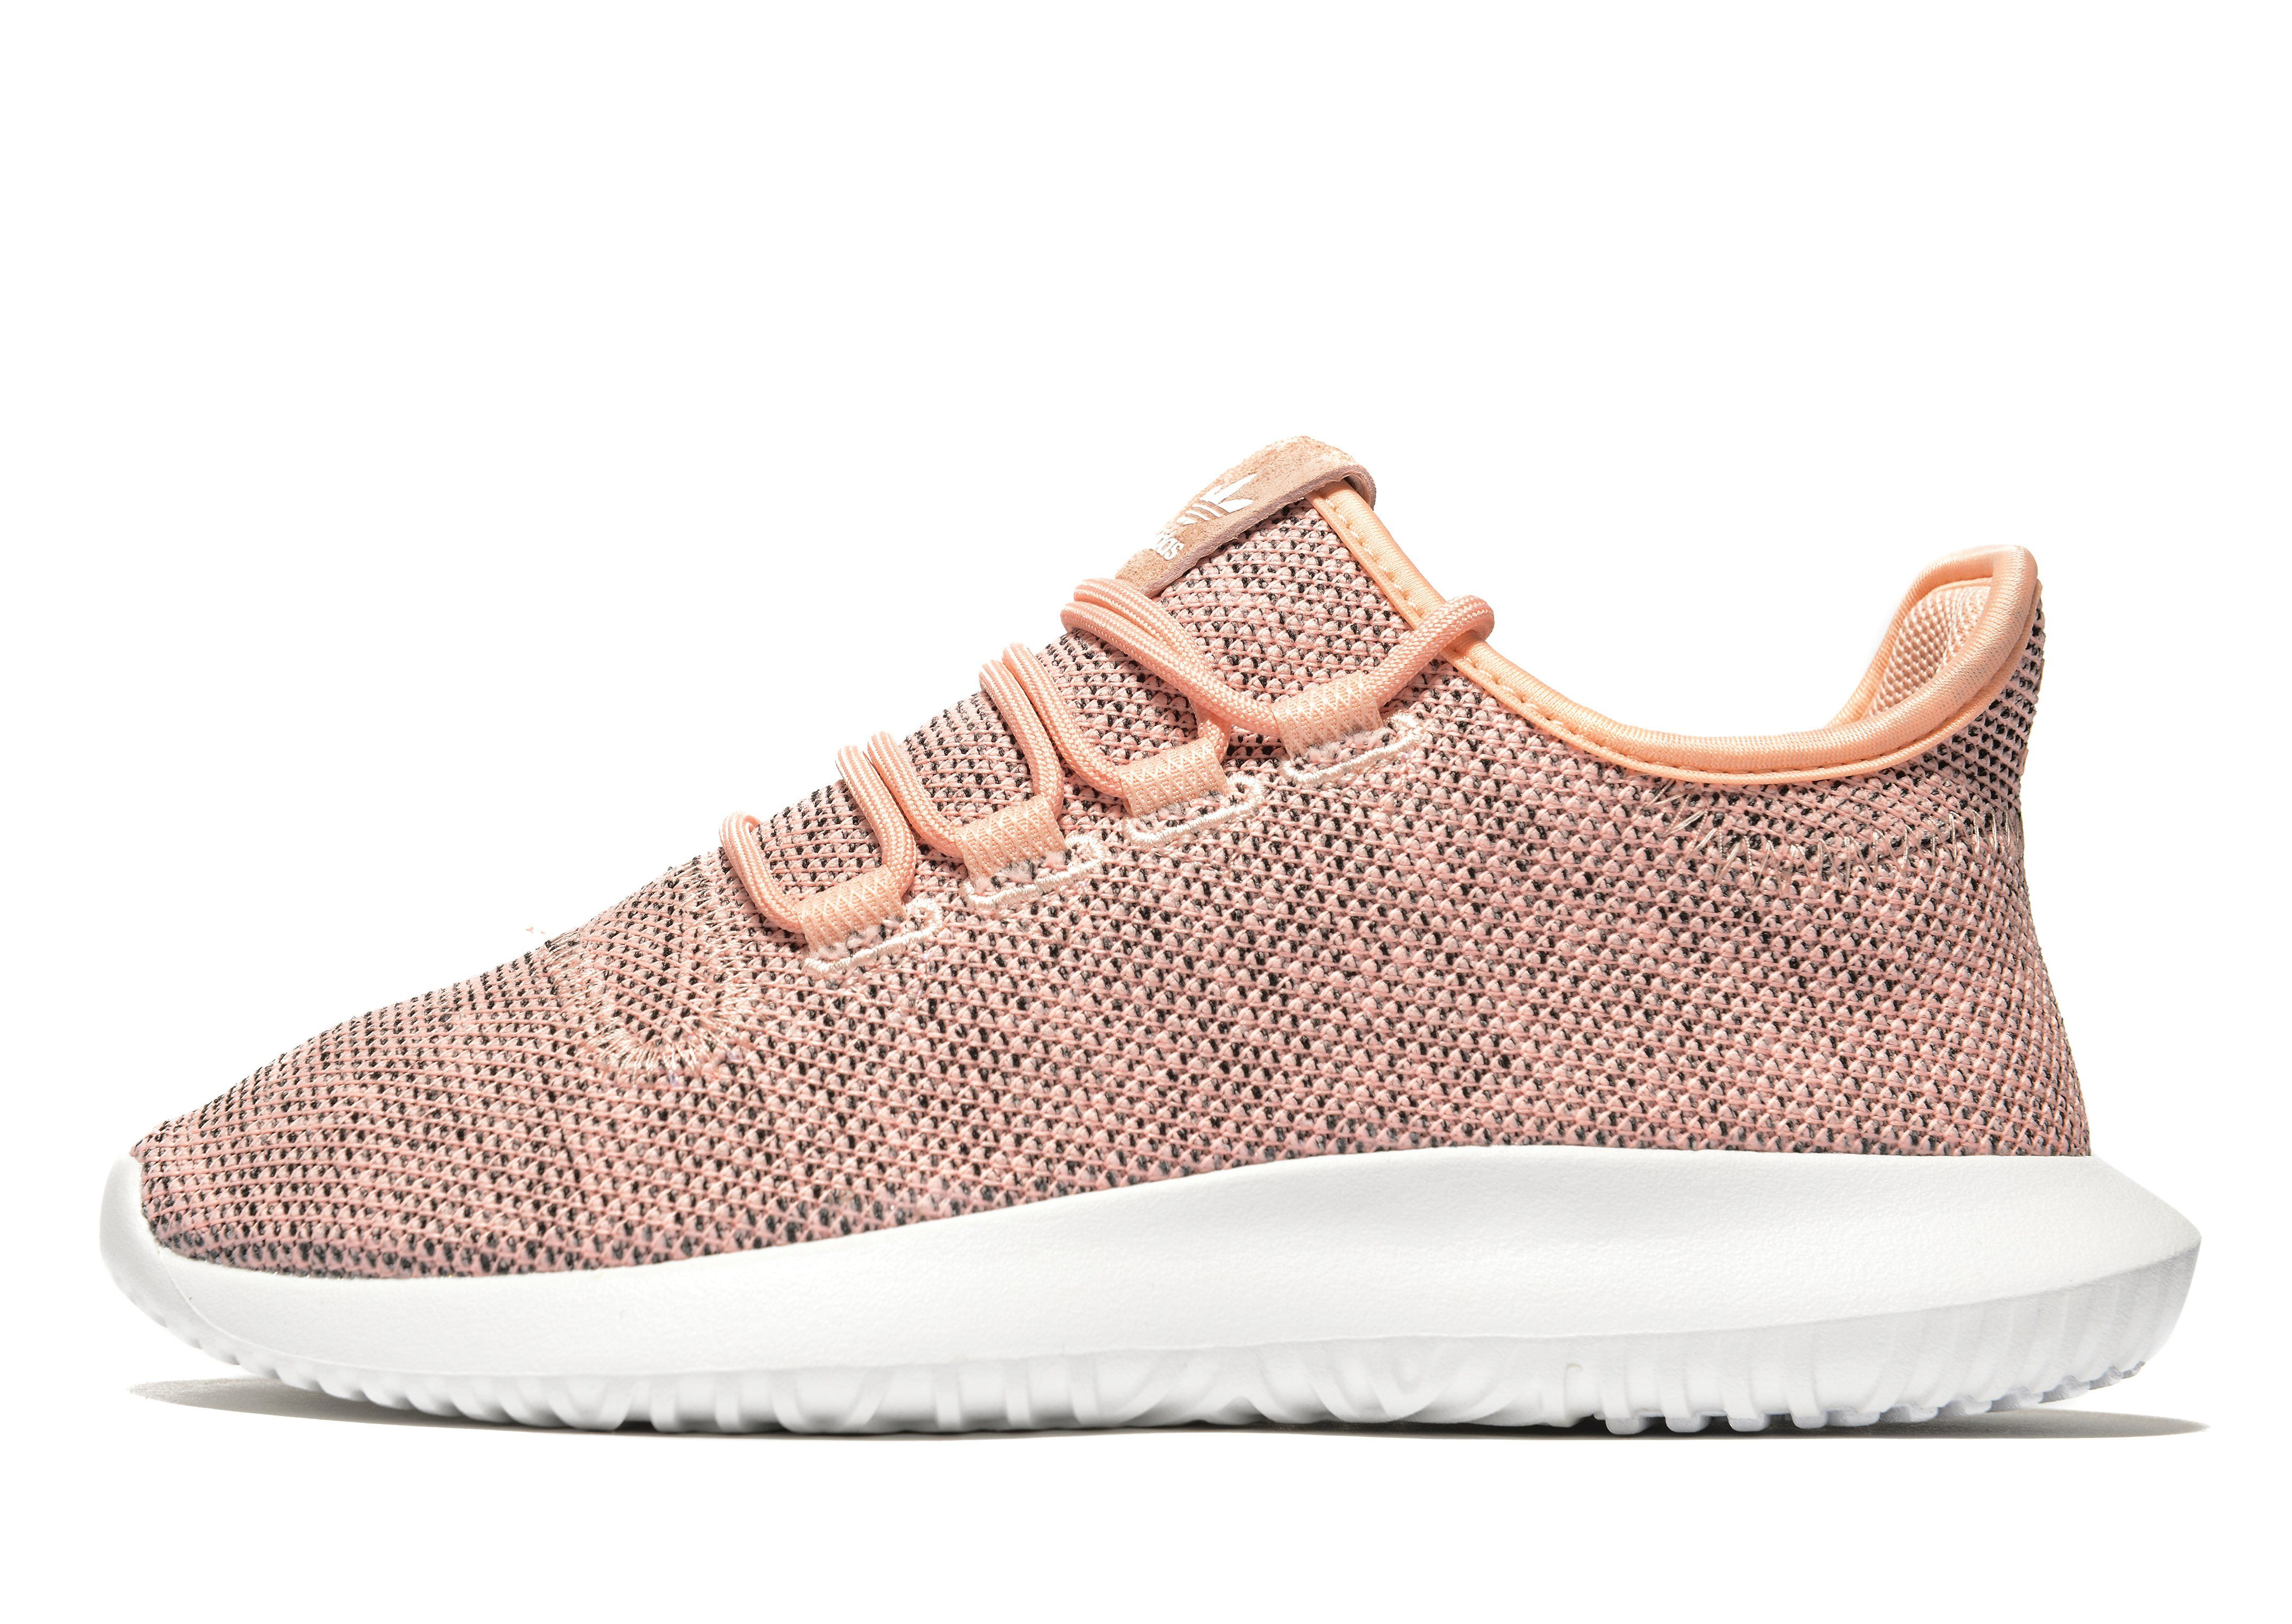 adidas Originals Tubular Shadow Women's